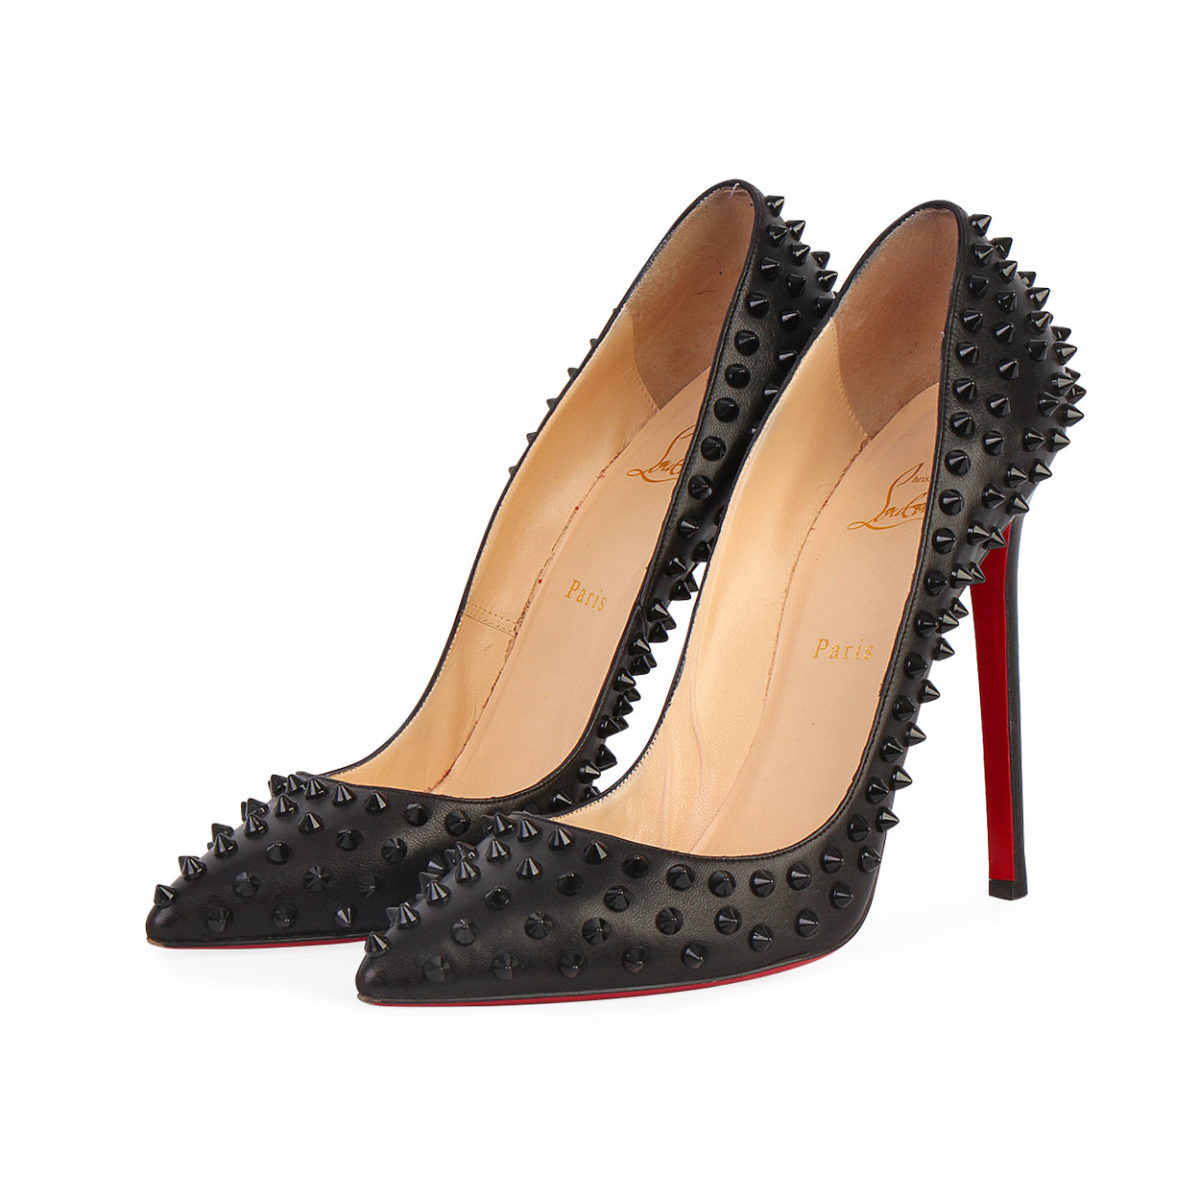 9495561153e CHRISTIAN LOUBOUTIN Nappa Pigalle Spikes 120 Pumps Black - S: 41 (7.5)